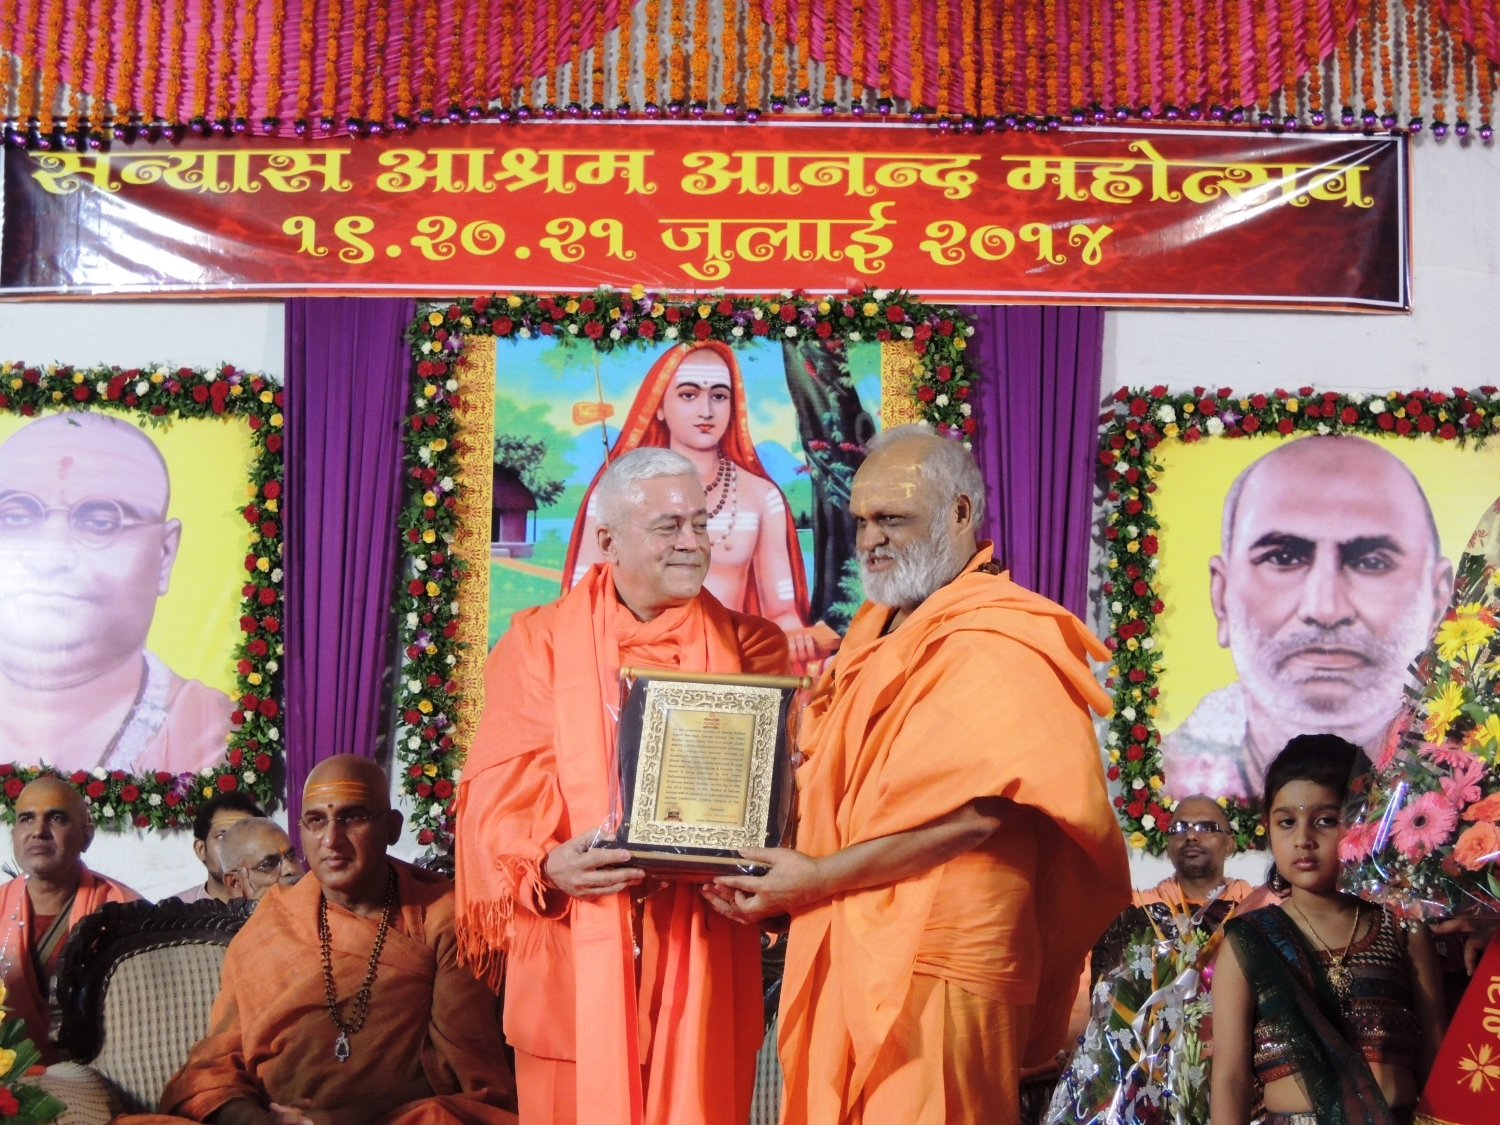 H.H. Jagat Amrta Súryánanda Mahá Rája recieved the Sanyasa Áshrama Award - Mumbai, India - 2014, July